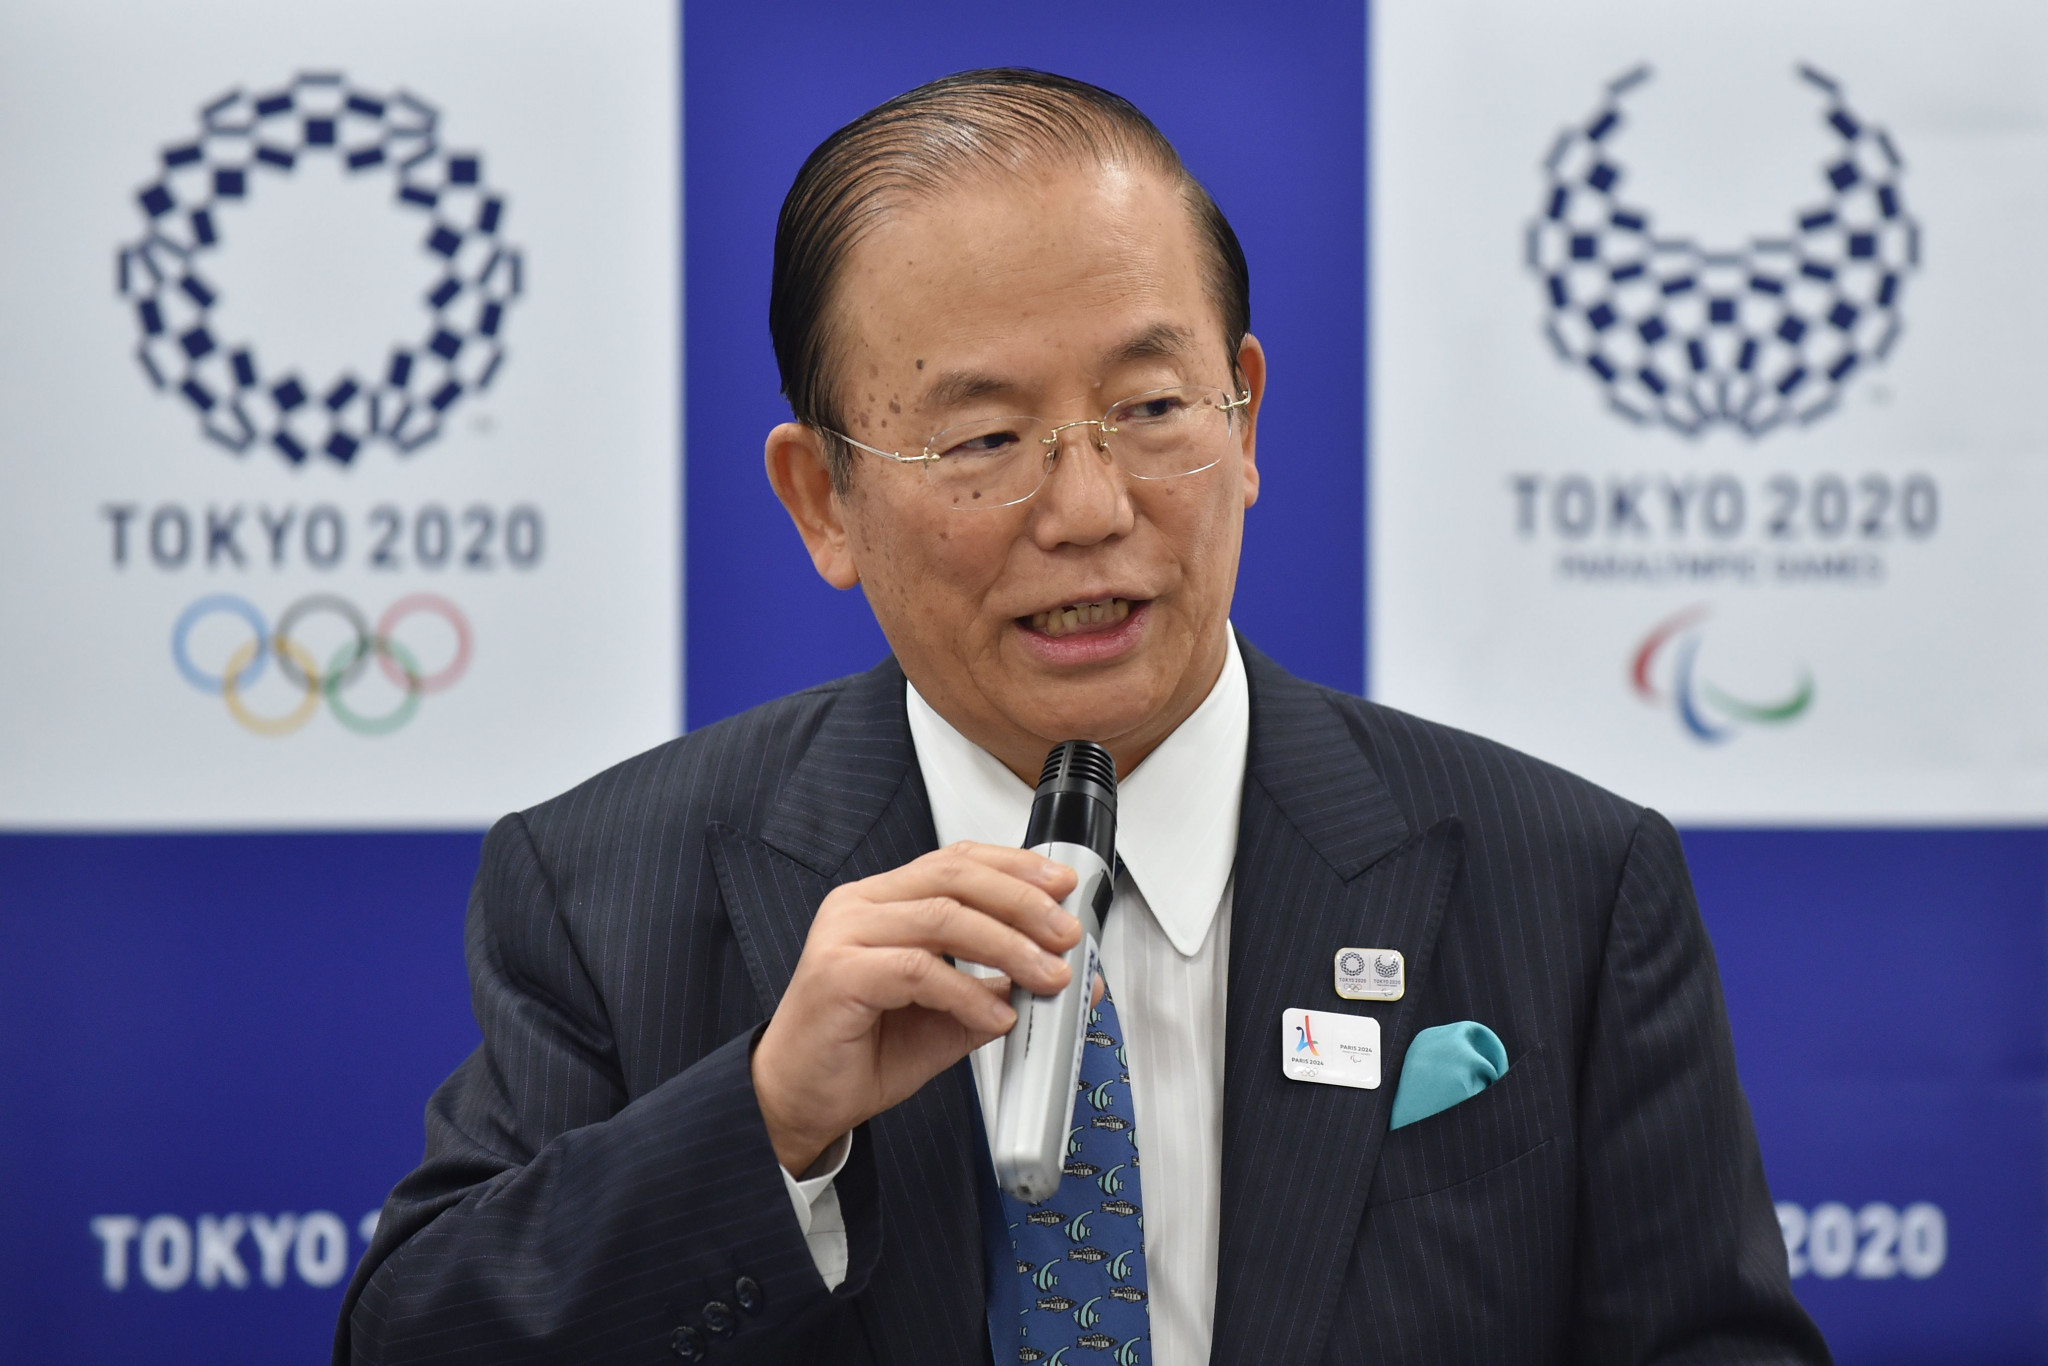 Tokyo 2020 chief executive vows to ensure Olympic and Paralympic Games cost remains within budget